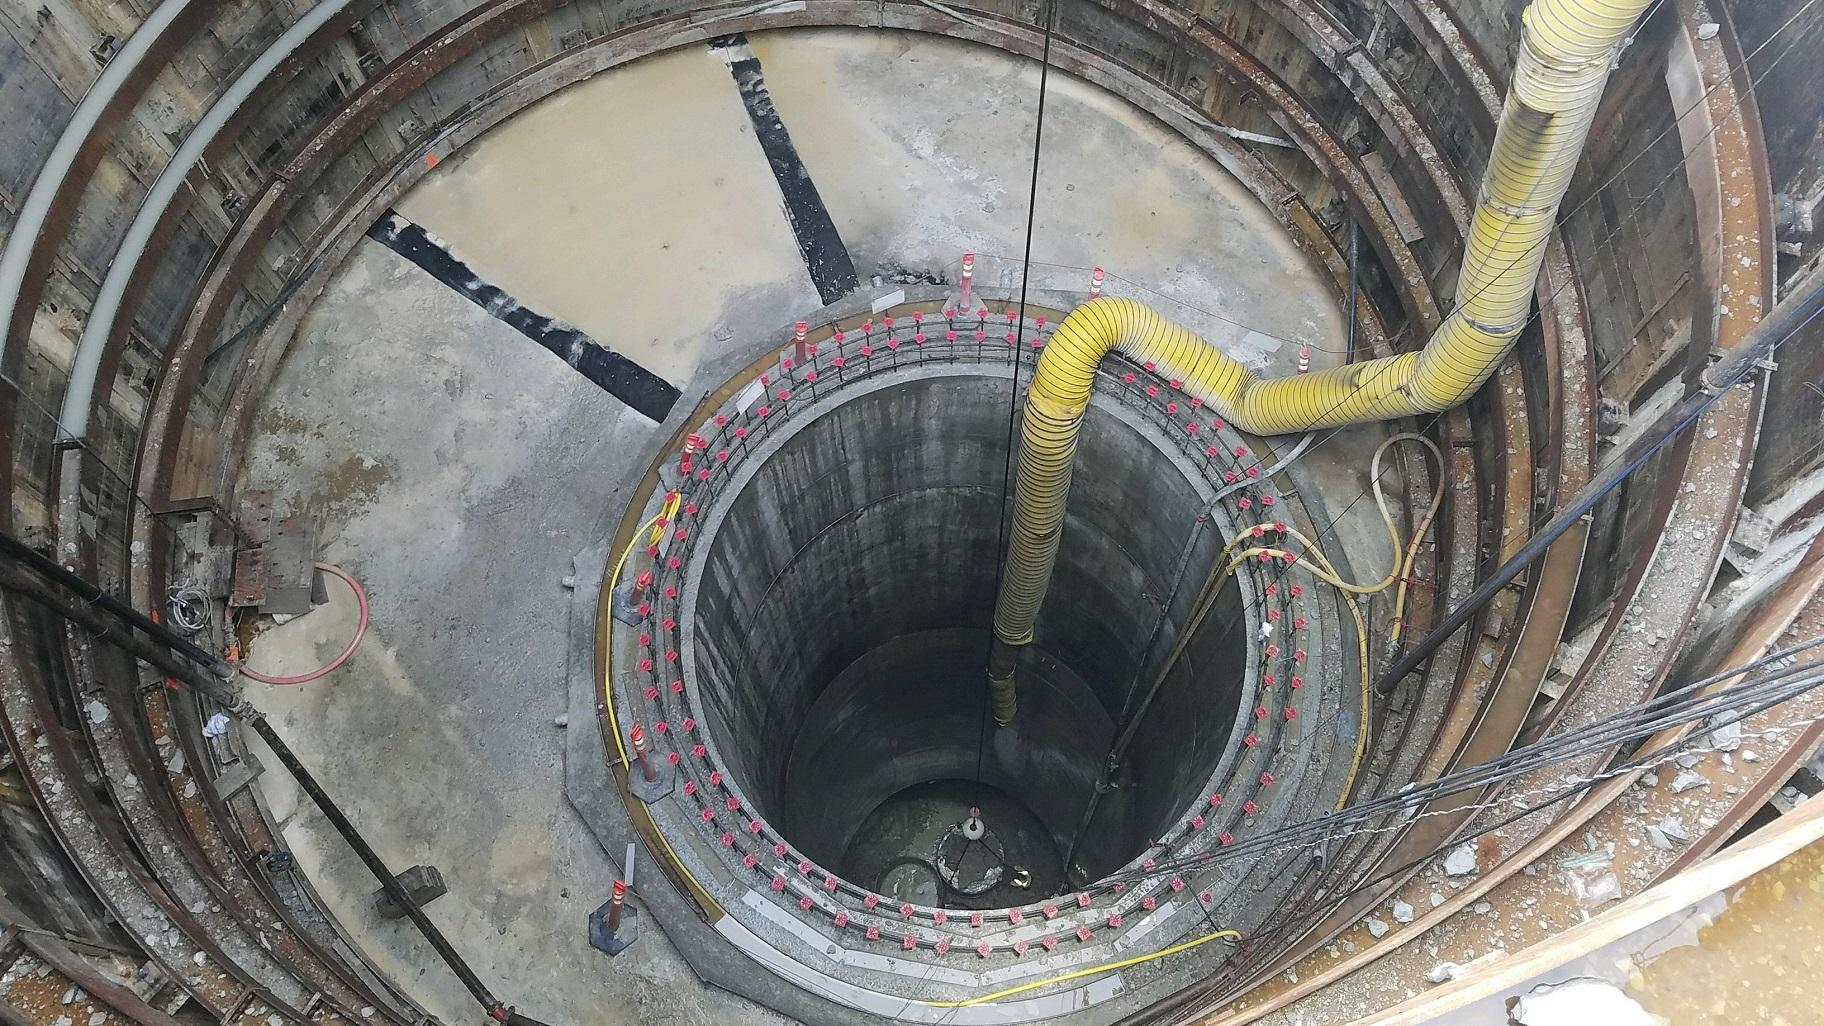 The new Albany Park Stormwater Diversion Tunnel diverts water 150 feet below the surface. (Courtesy Chicago Department of Transportation)